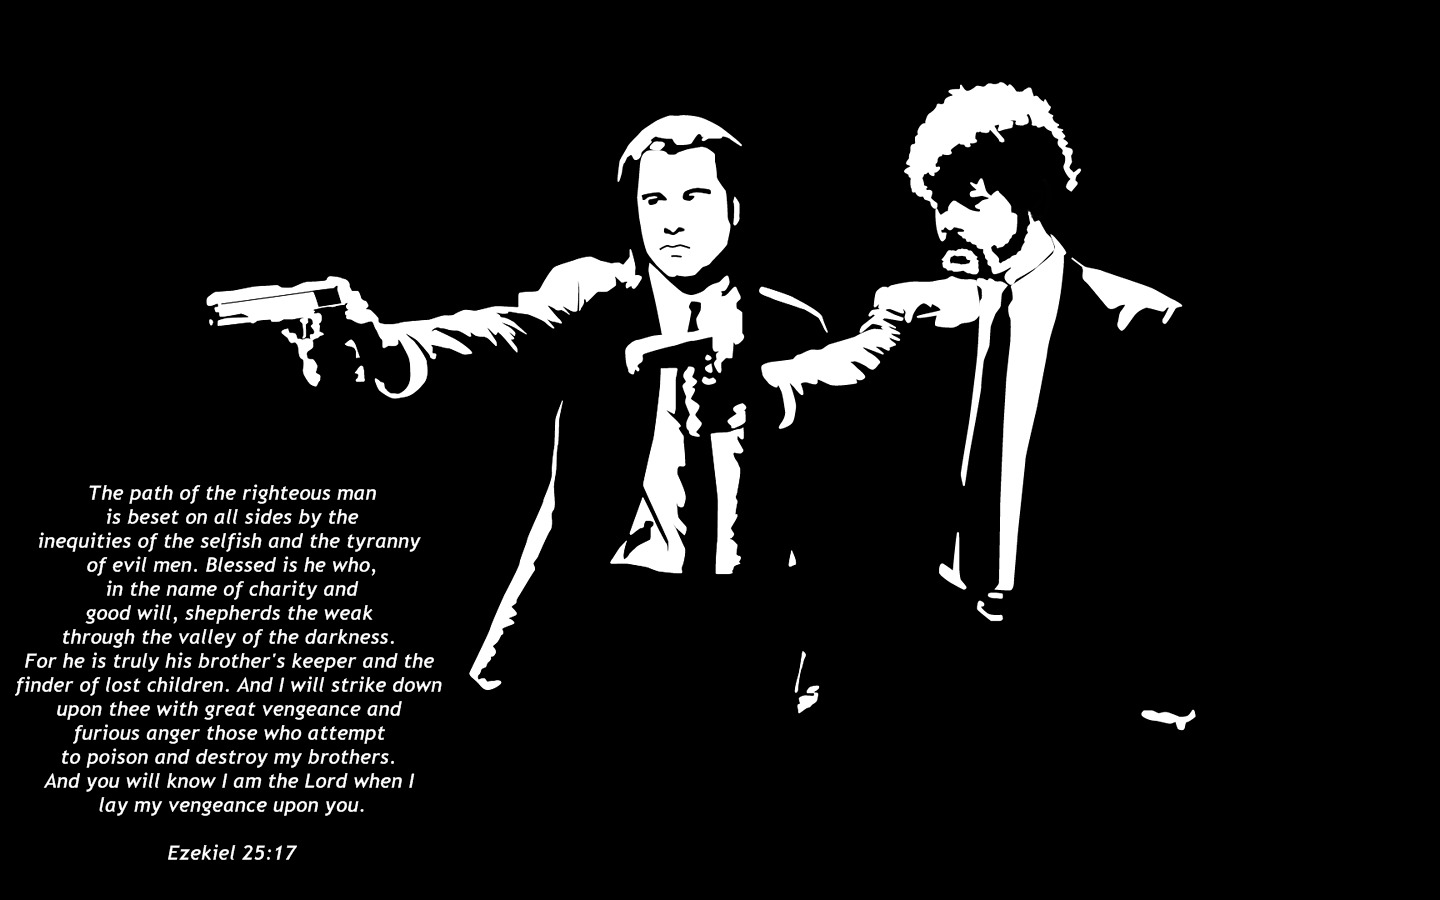 text pulp fiction Movie HD Wallpaper